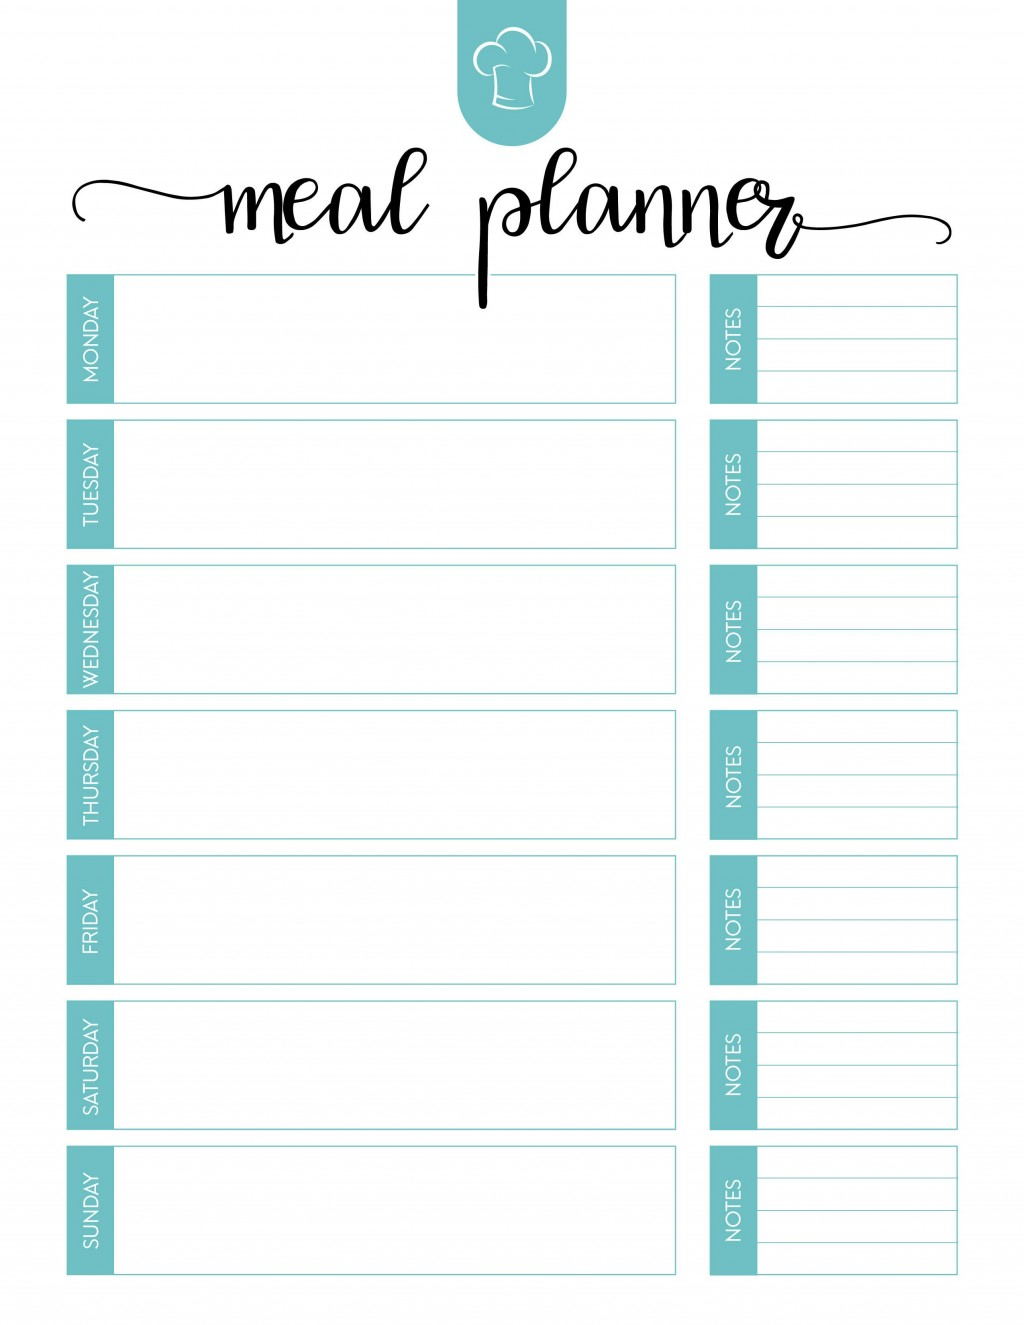 Weekly Free Meal Plan Template With Note  Worksheet Planner For Weight Los ExcelLarge